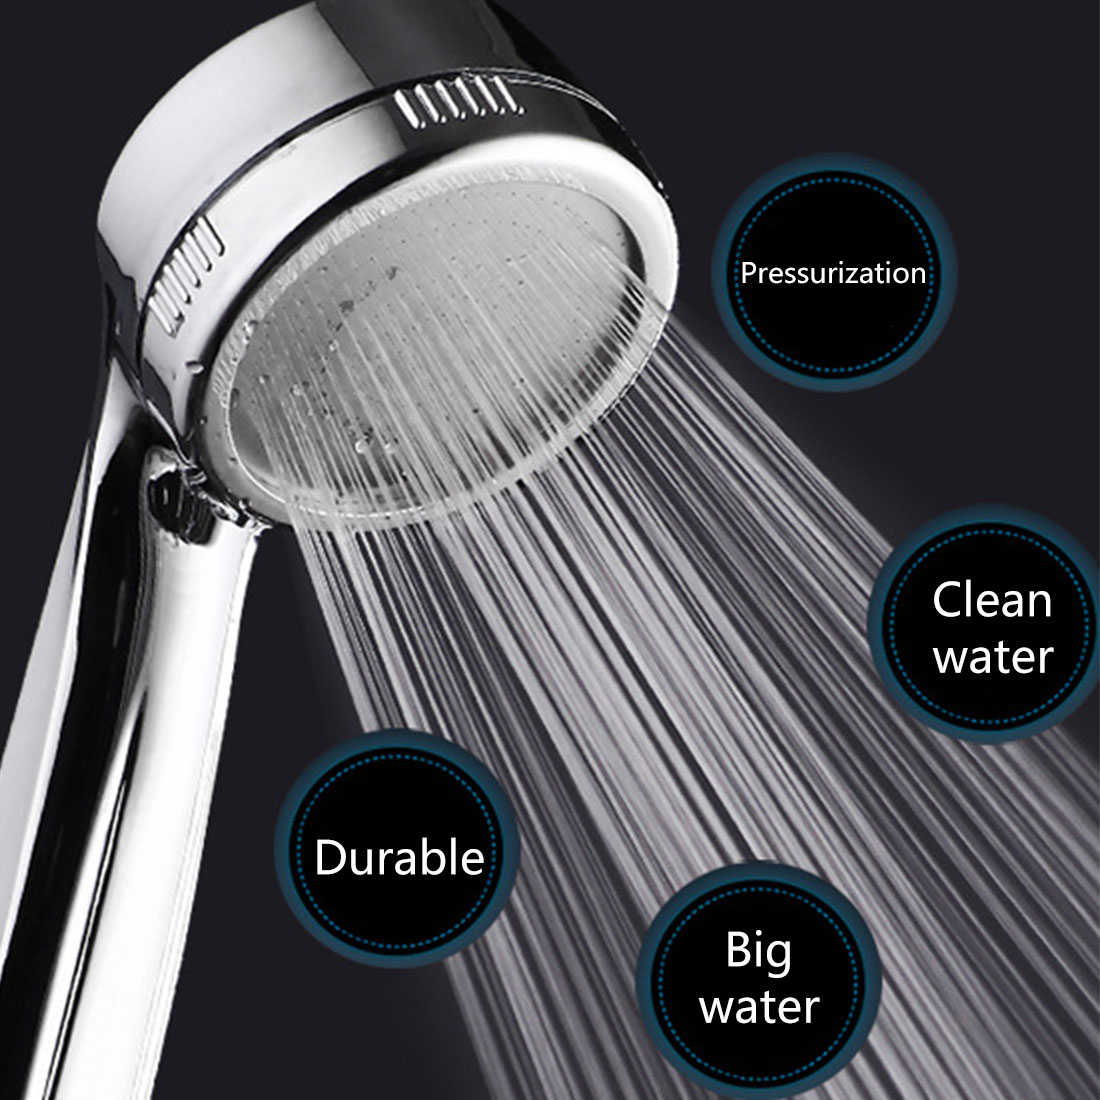 Negative Ion Shower Head Water Shower Head Low Pressure Booster Bath Energy Saving Pinhole Absorption Chrome Plating